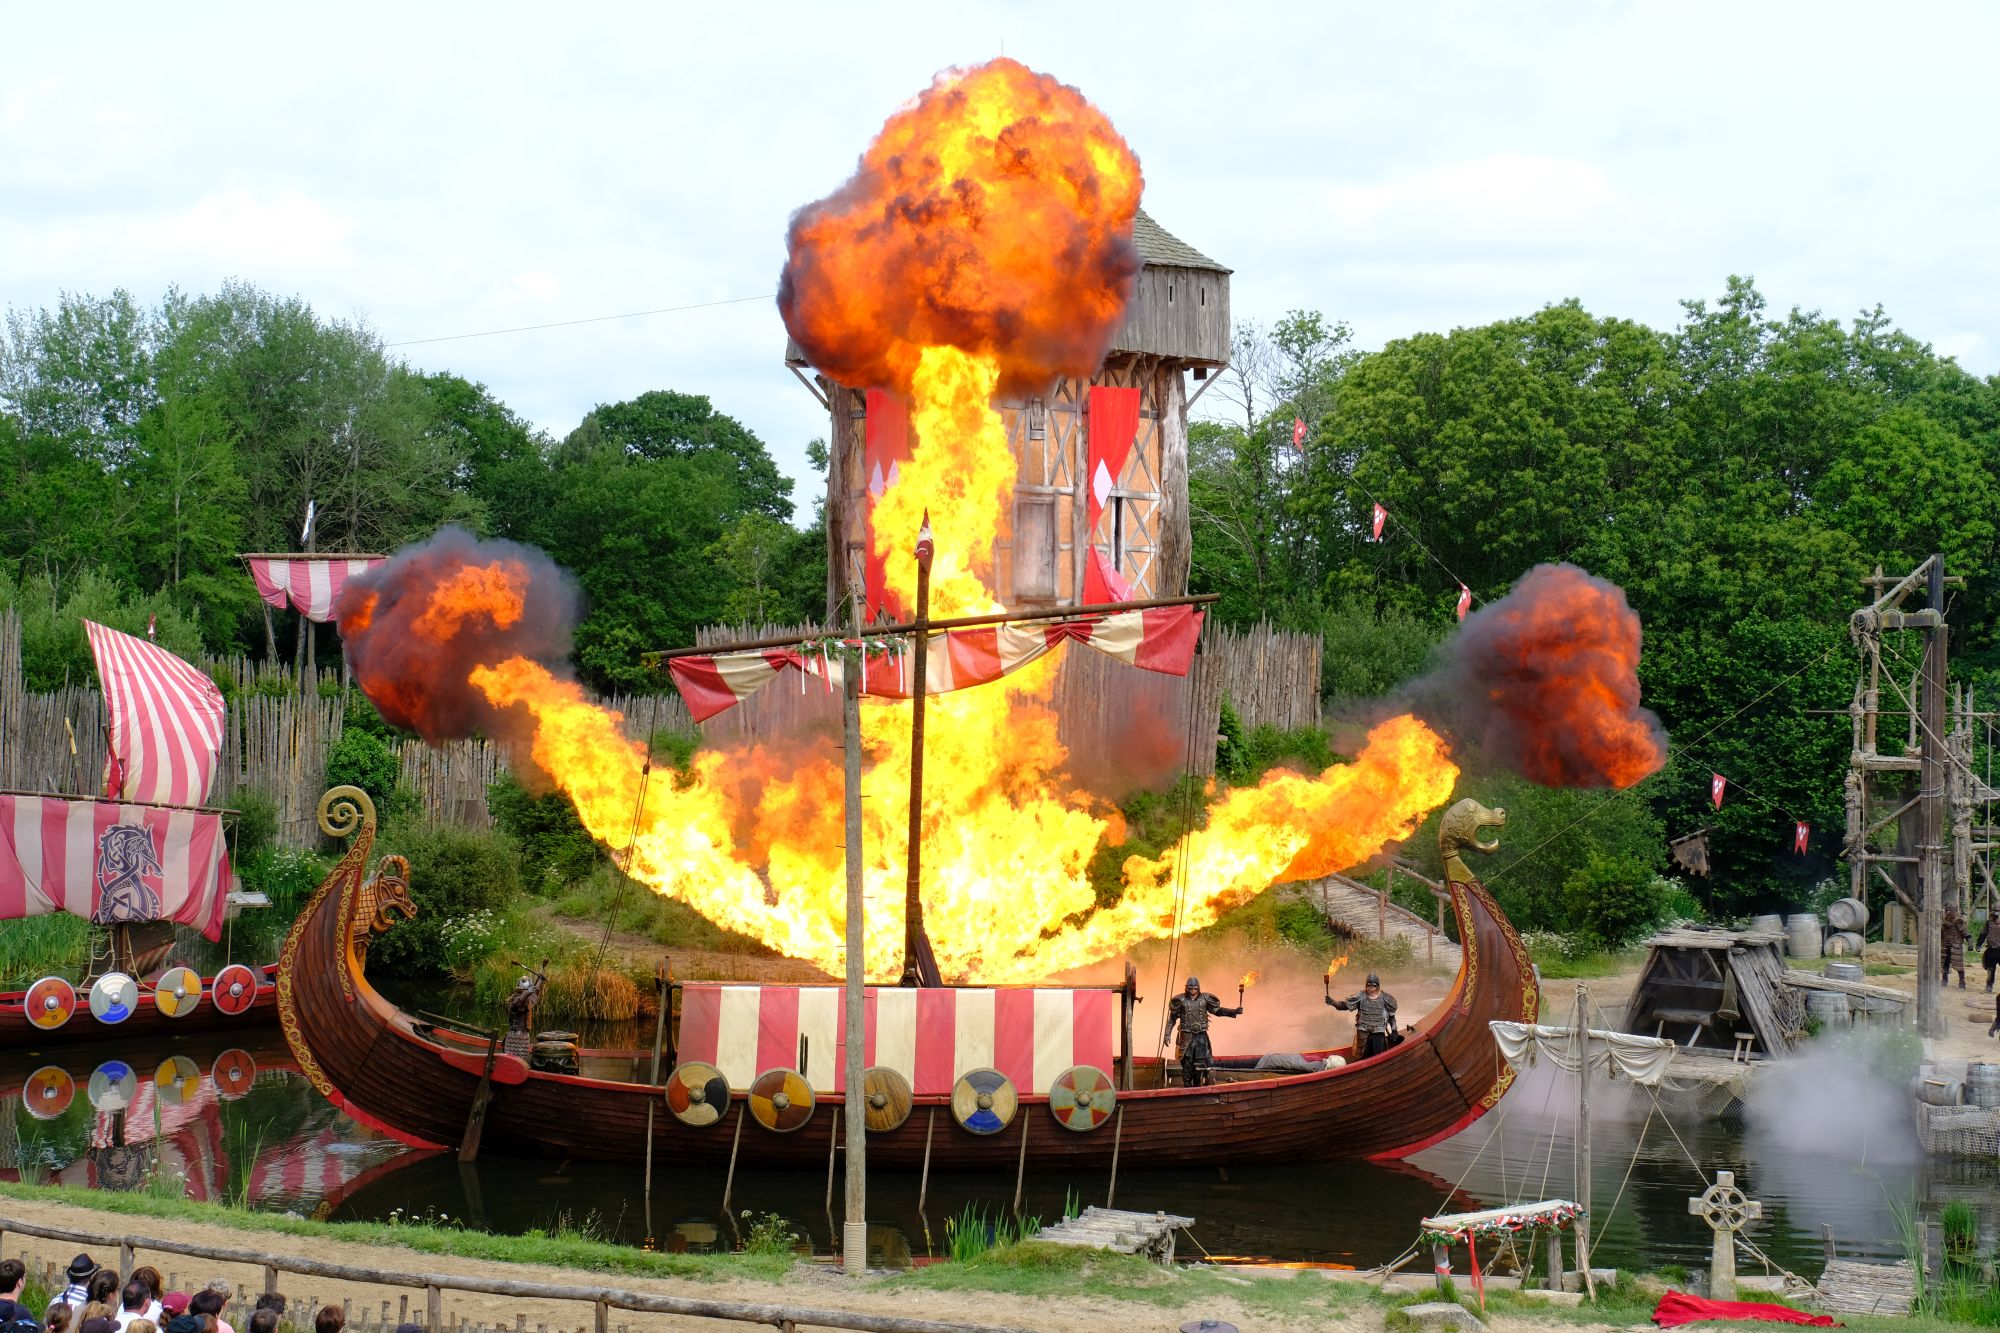 A viking ship in flames at the Puy du Fou theme park.